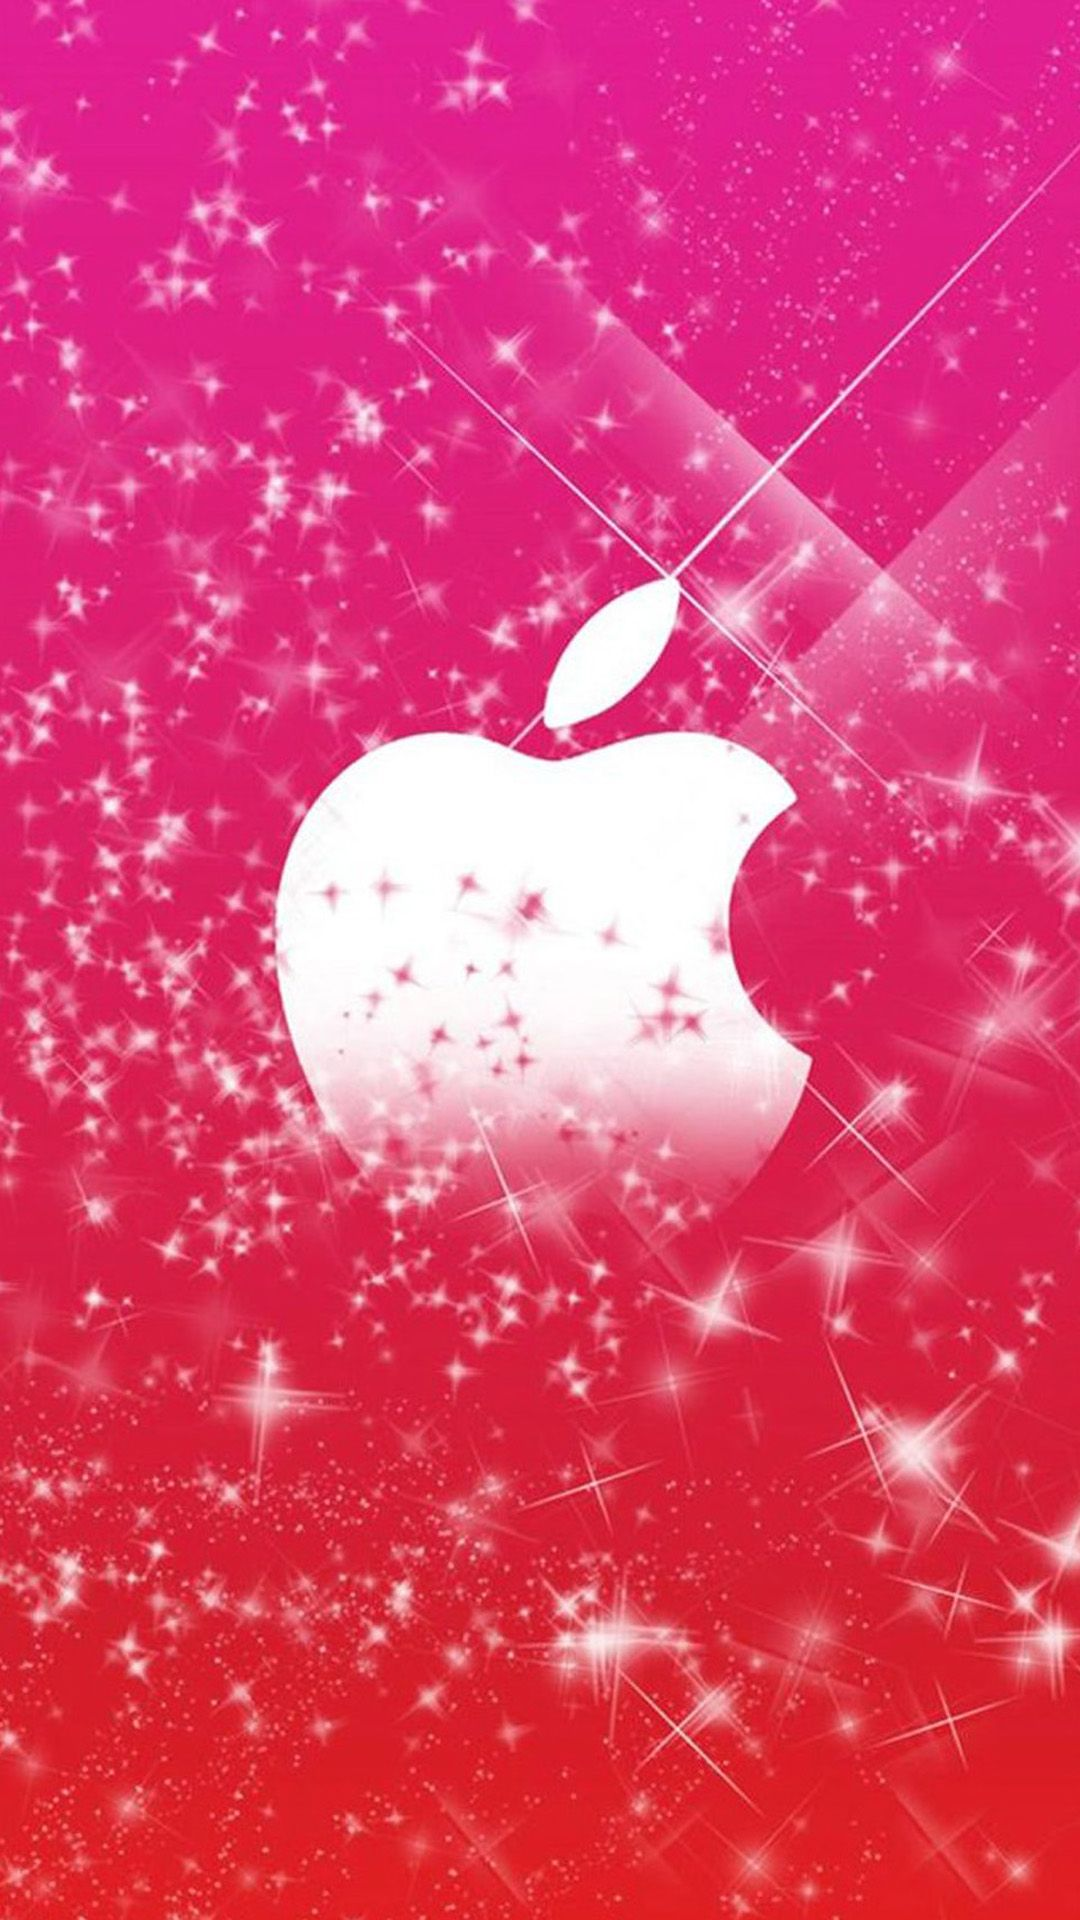 Apple Wallpapers For iPhone 6 Plus 394, iPhone 6 Plus